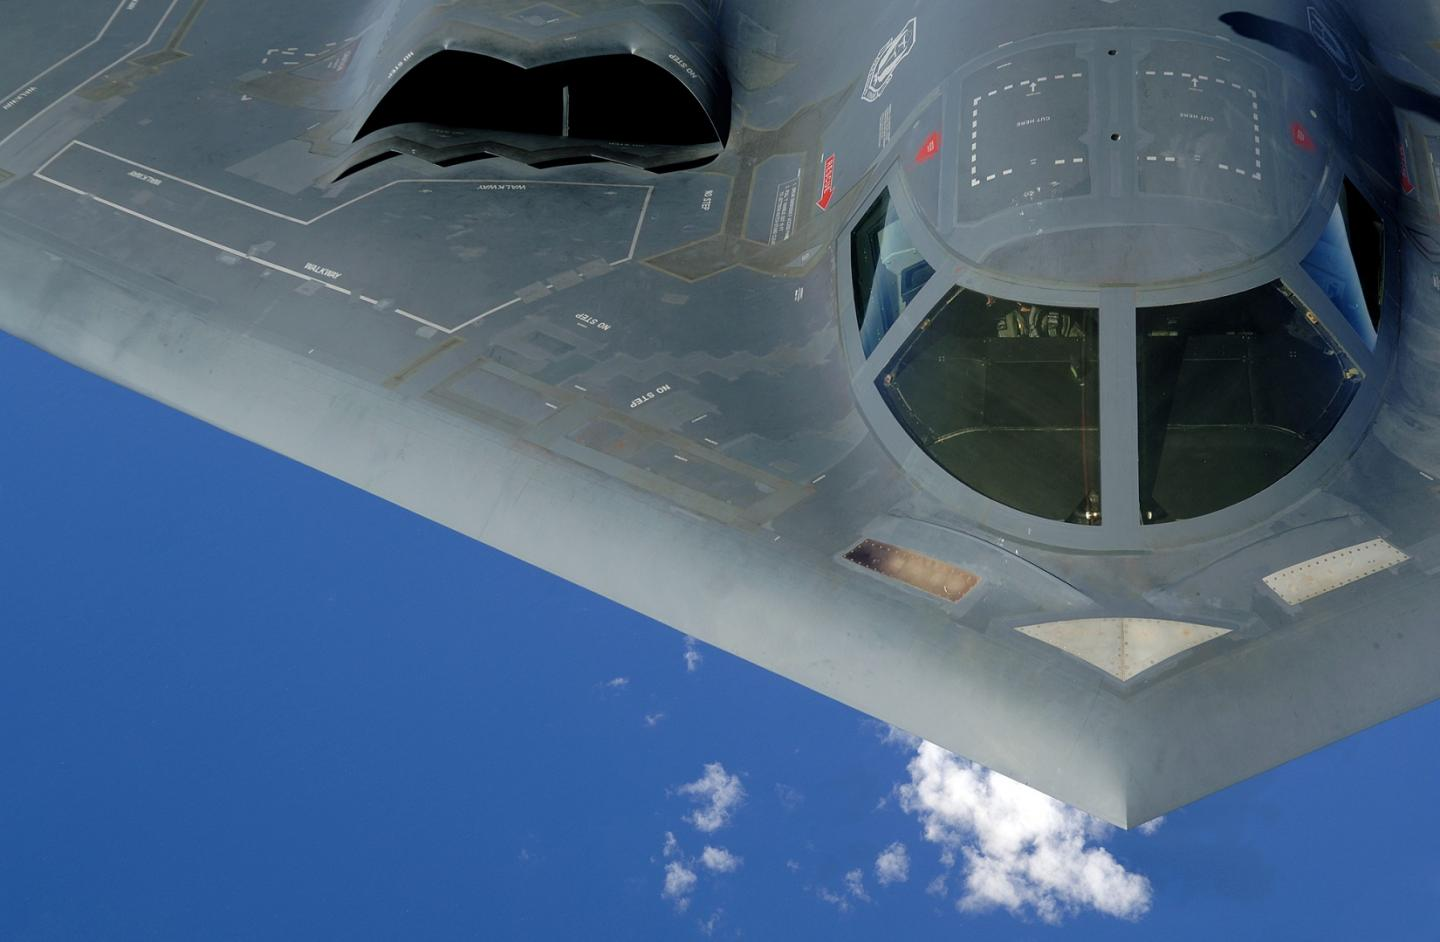 America's New B-21 Stealth Bomber Is Just Two Years Away